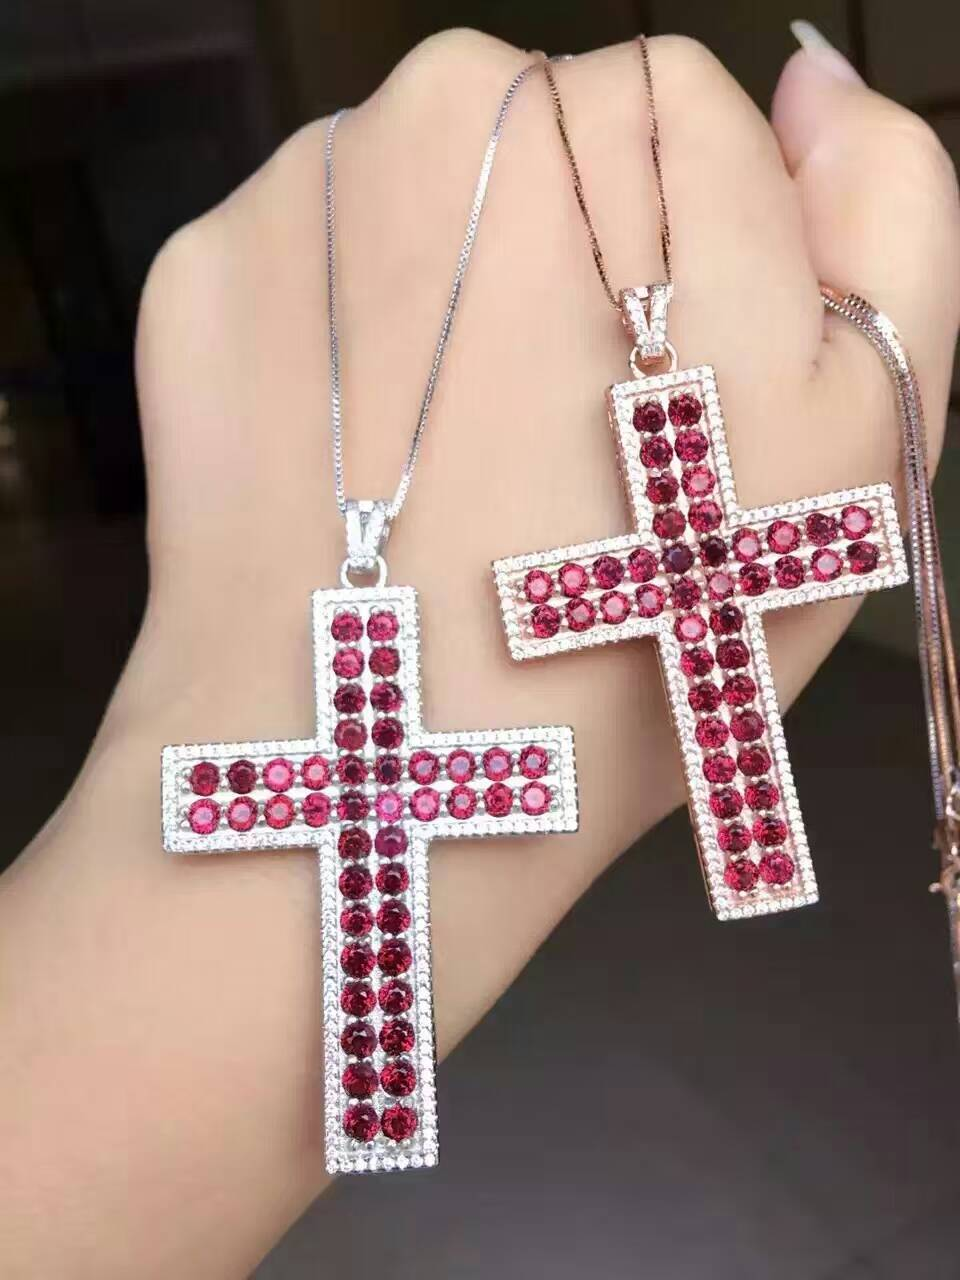 Natural red garnet gem pendant S925 silver Natural gemstone Pendant Necklace trendy Luxury big cross women party gift jewelry natural ice jade gem pendant s925 silver natural gemstone pendant necklace luxury big round flower women gift party gift jewelry